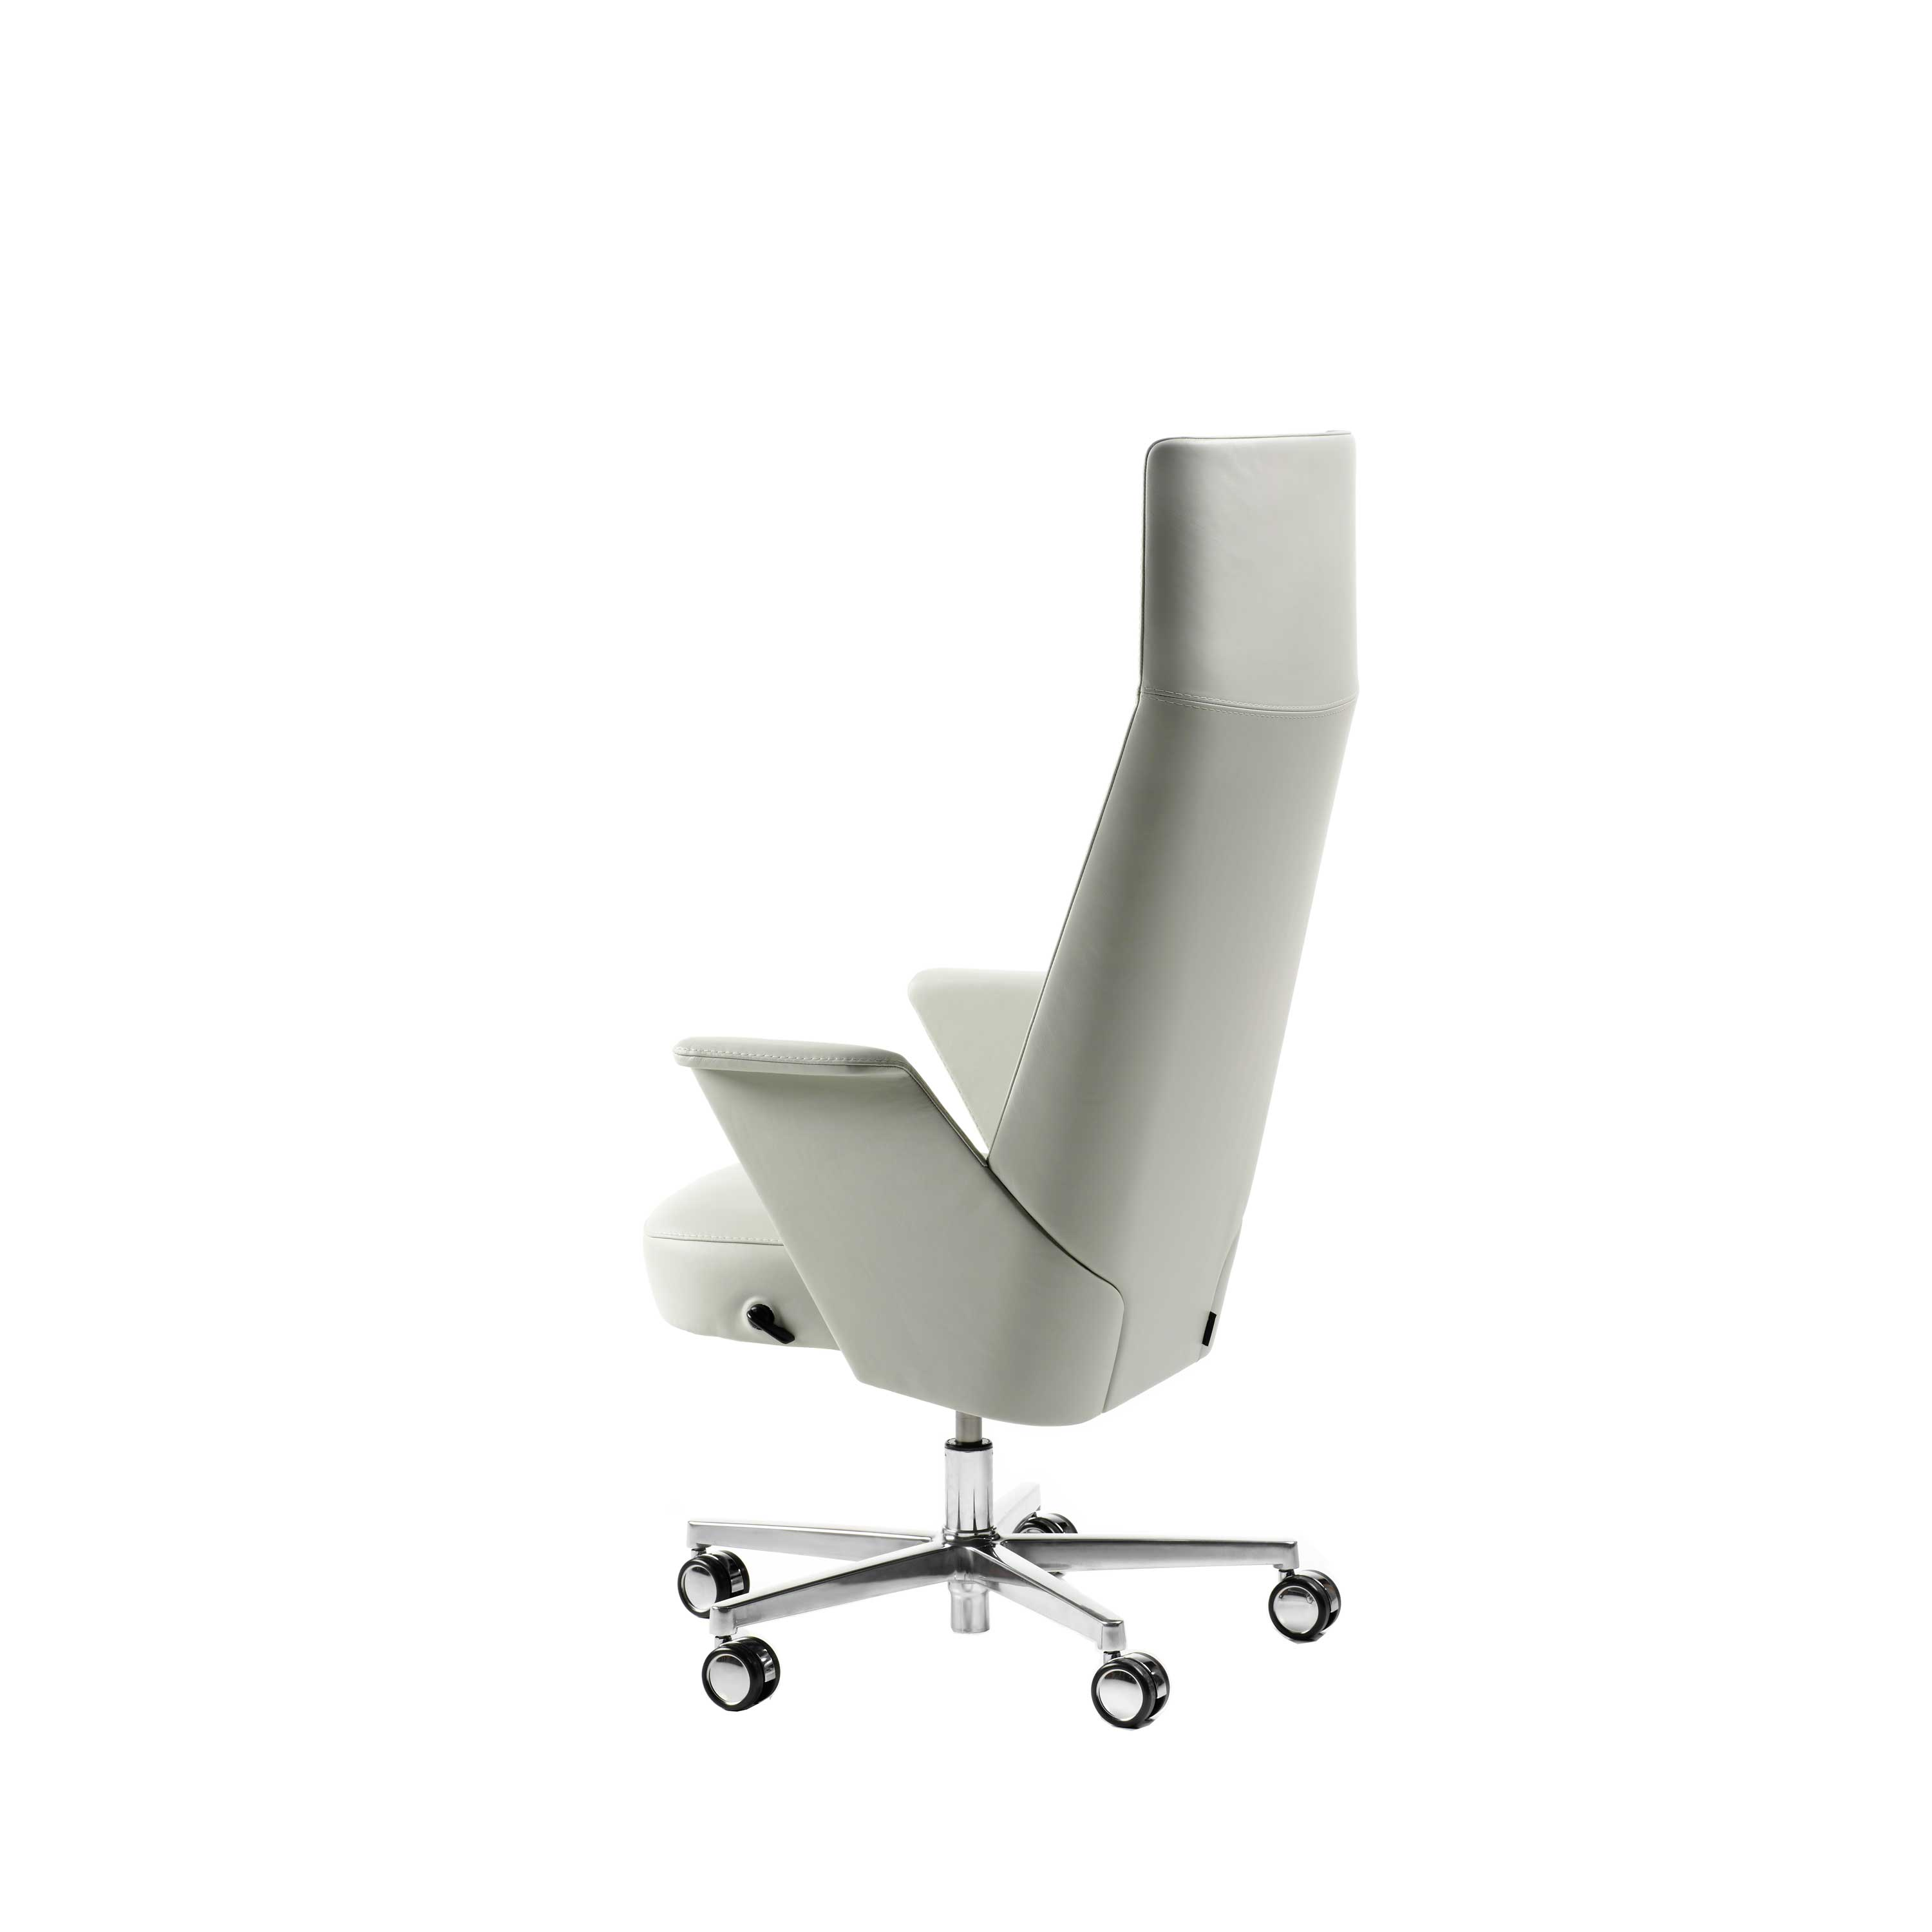 16S_Estel_Comfort&Relax_Office-Chair_Embrasse